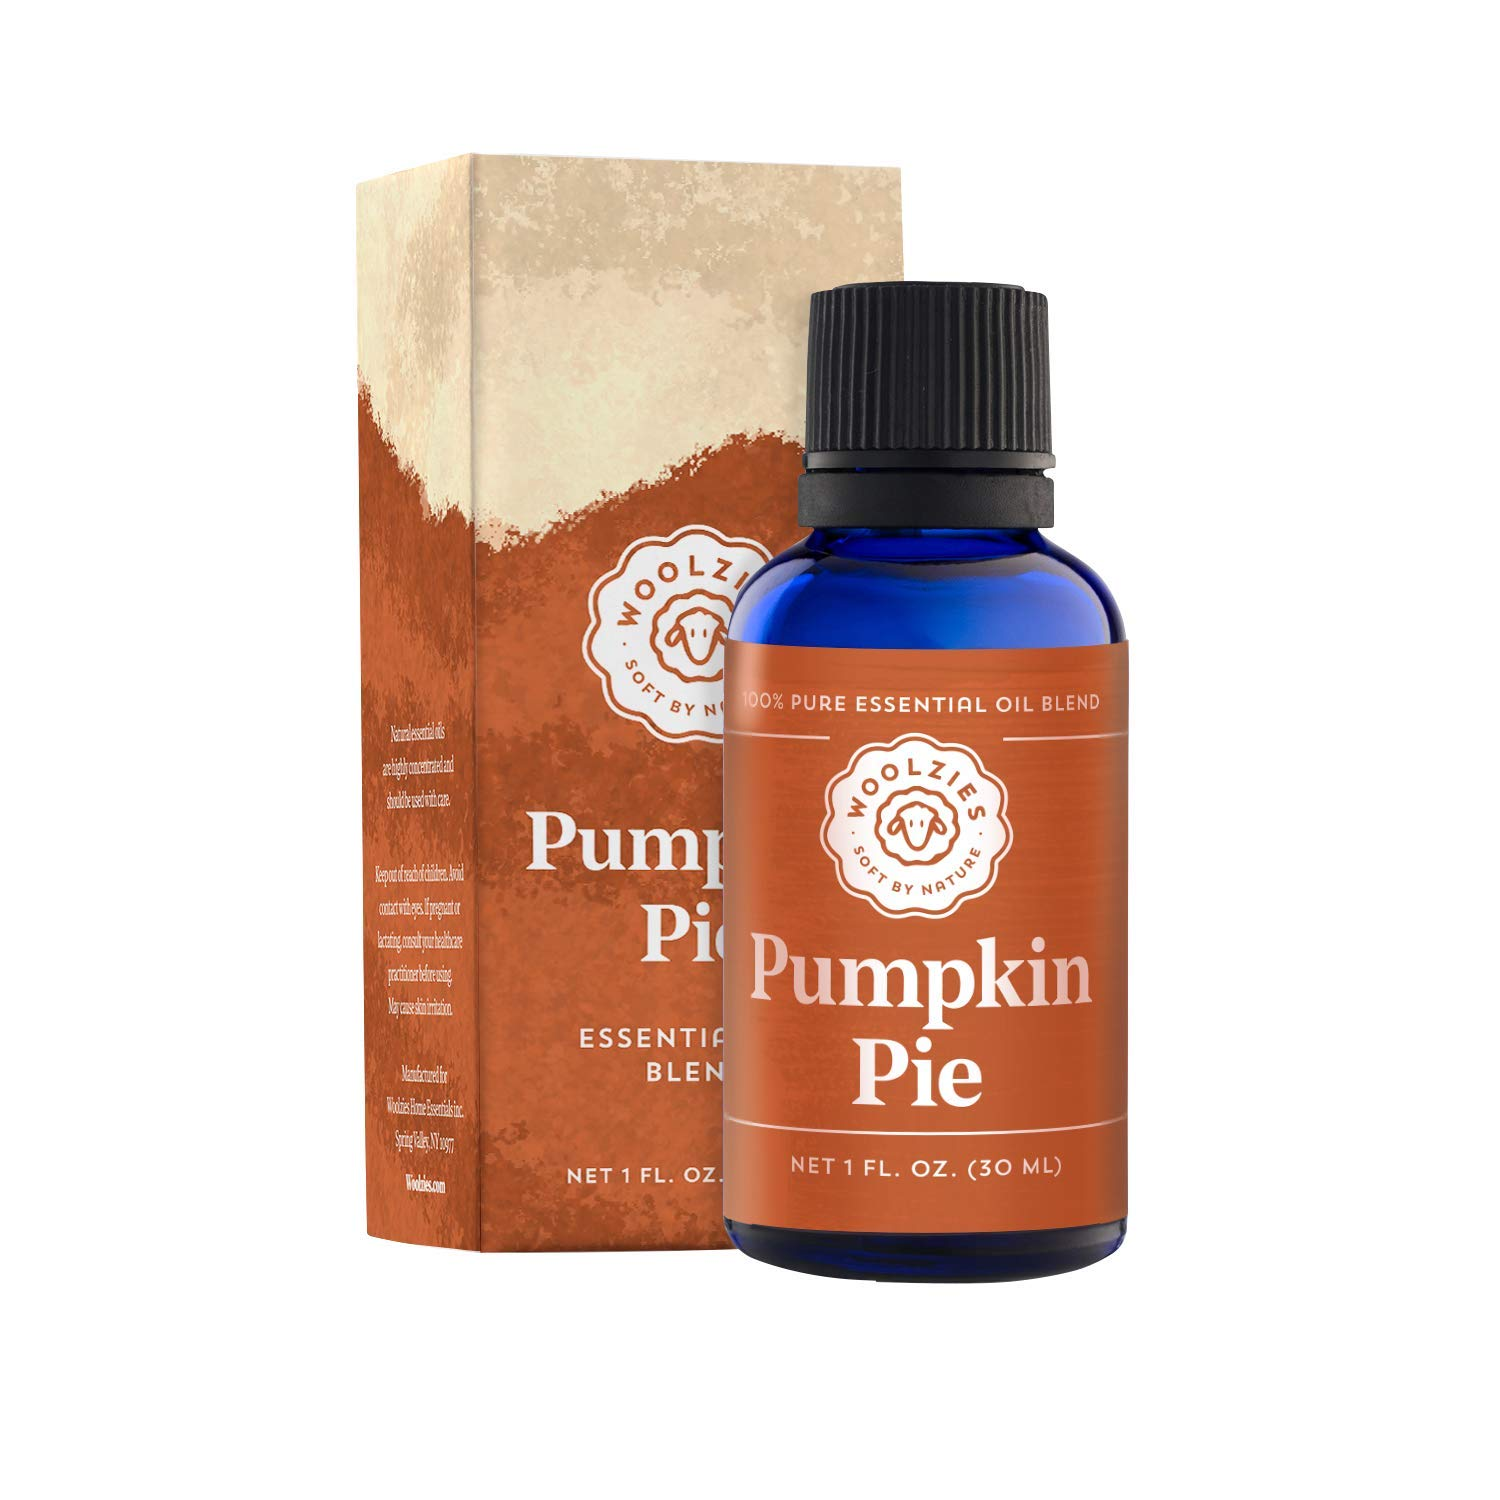 Woolzies 100% Pure & Natural Holiday Pumpkin Pie Essential Oil Blend 1 Fl Oz | Highest Quality Aromatherapy Therapeutic Grade Oil | For Diffuse, Internal & Topical Use by Woolzies